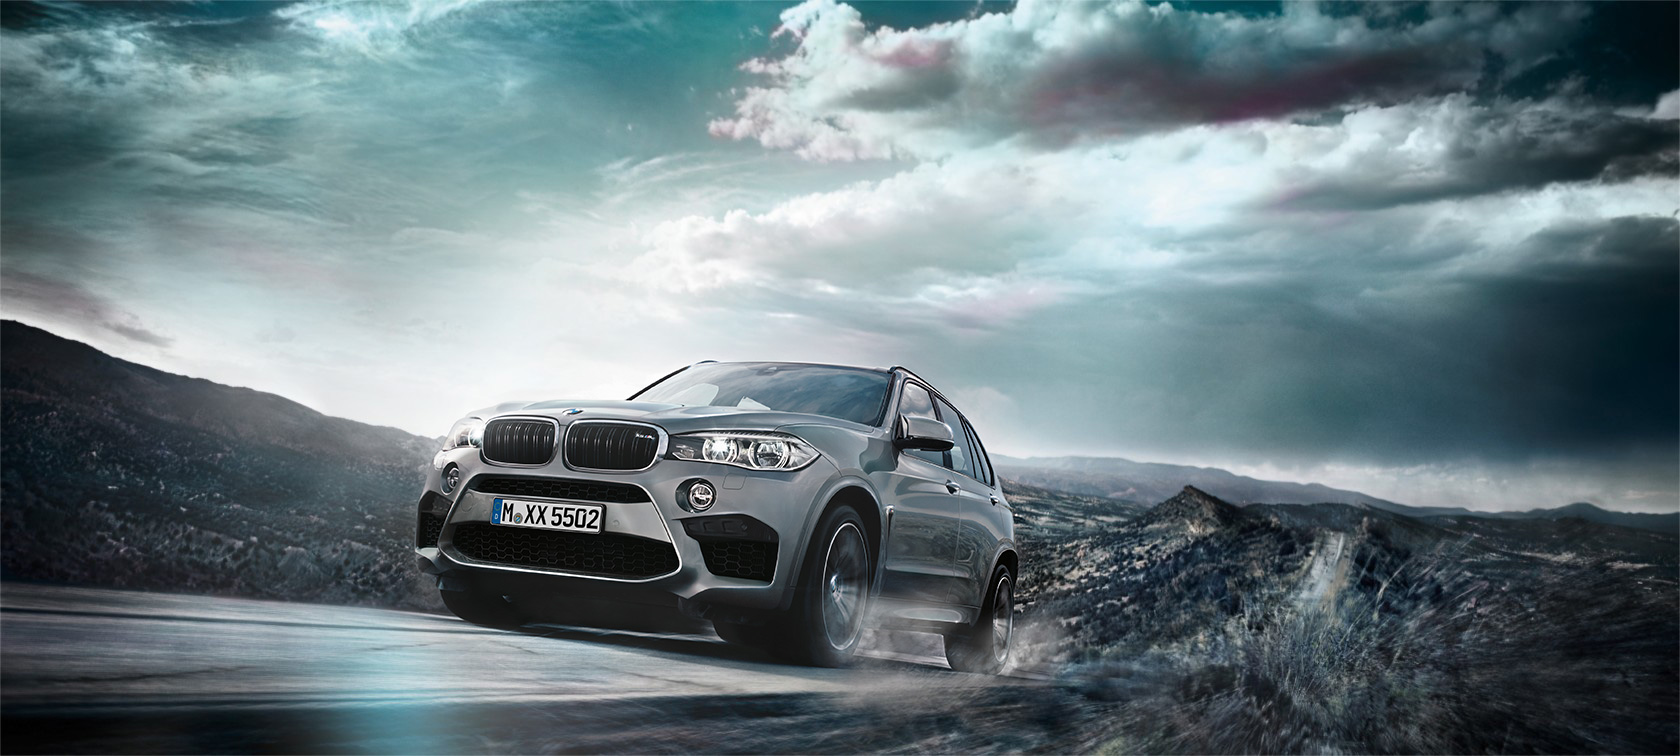 The M design of the BMW X5 M